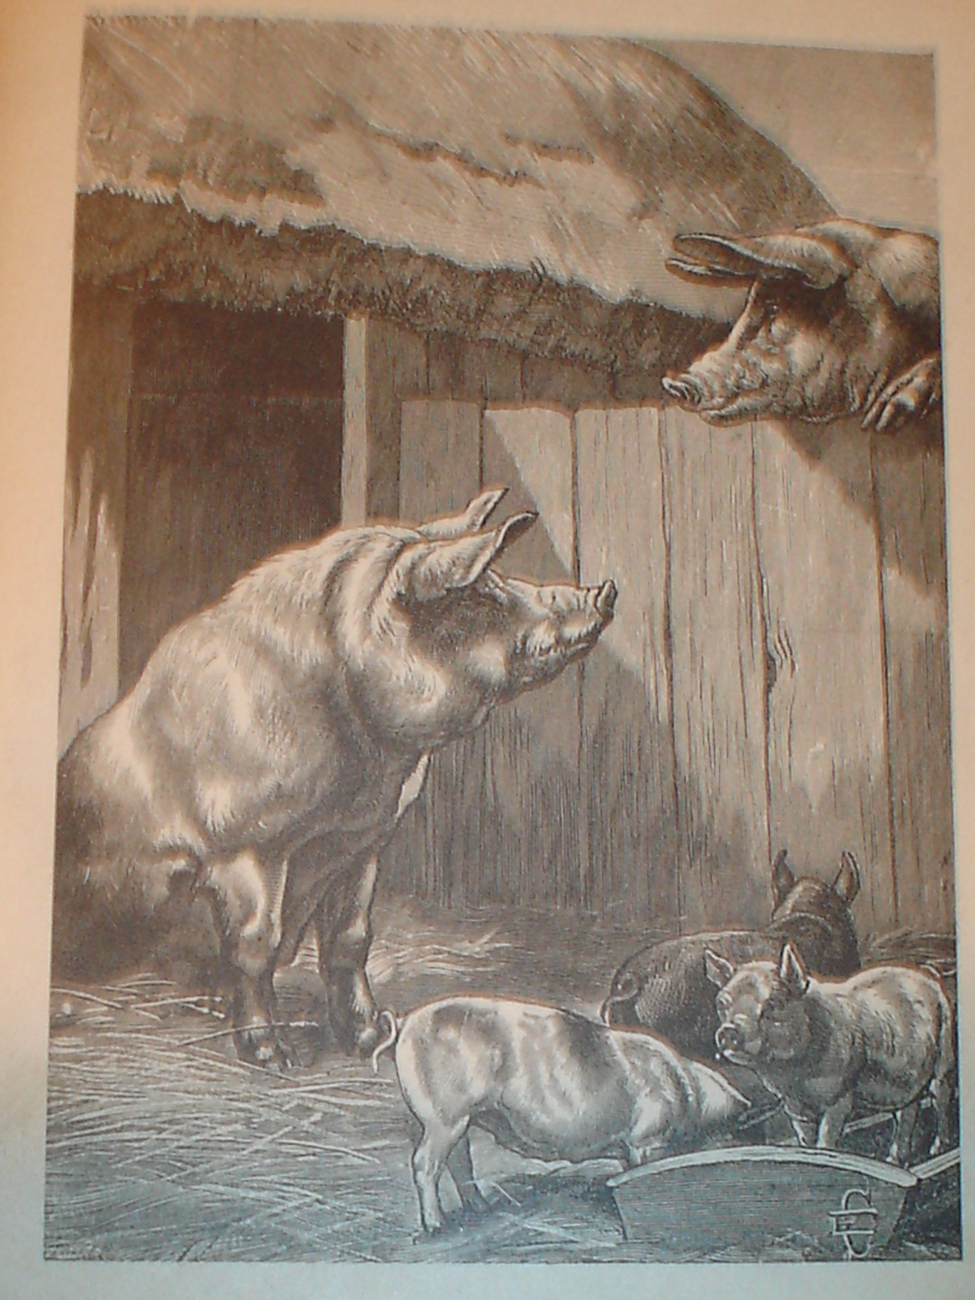 Best one yet! 1899 Print of Pigs in The Barnyard